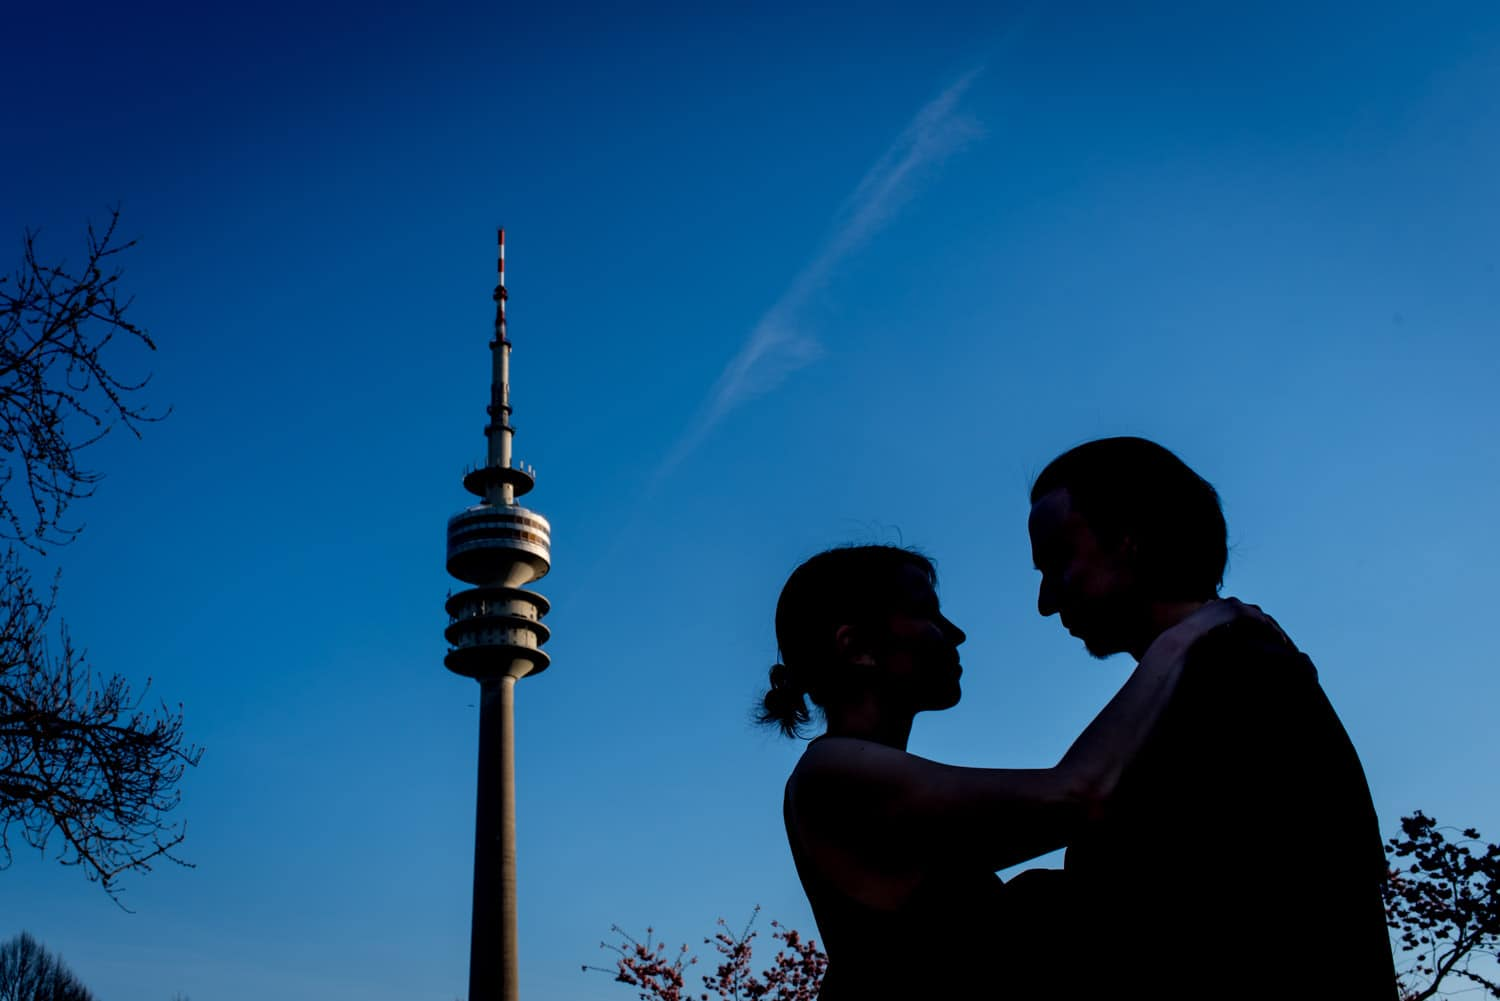 couple photo in front of Munich Olympic Stadium tower with blue sky